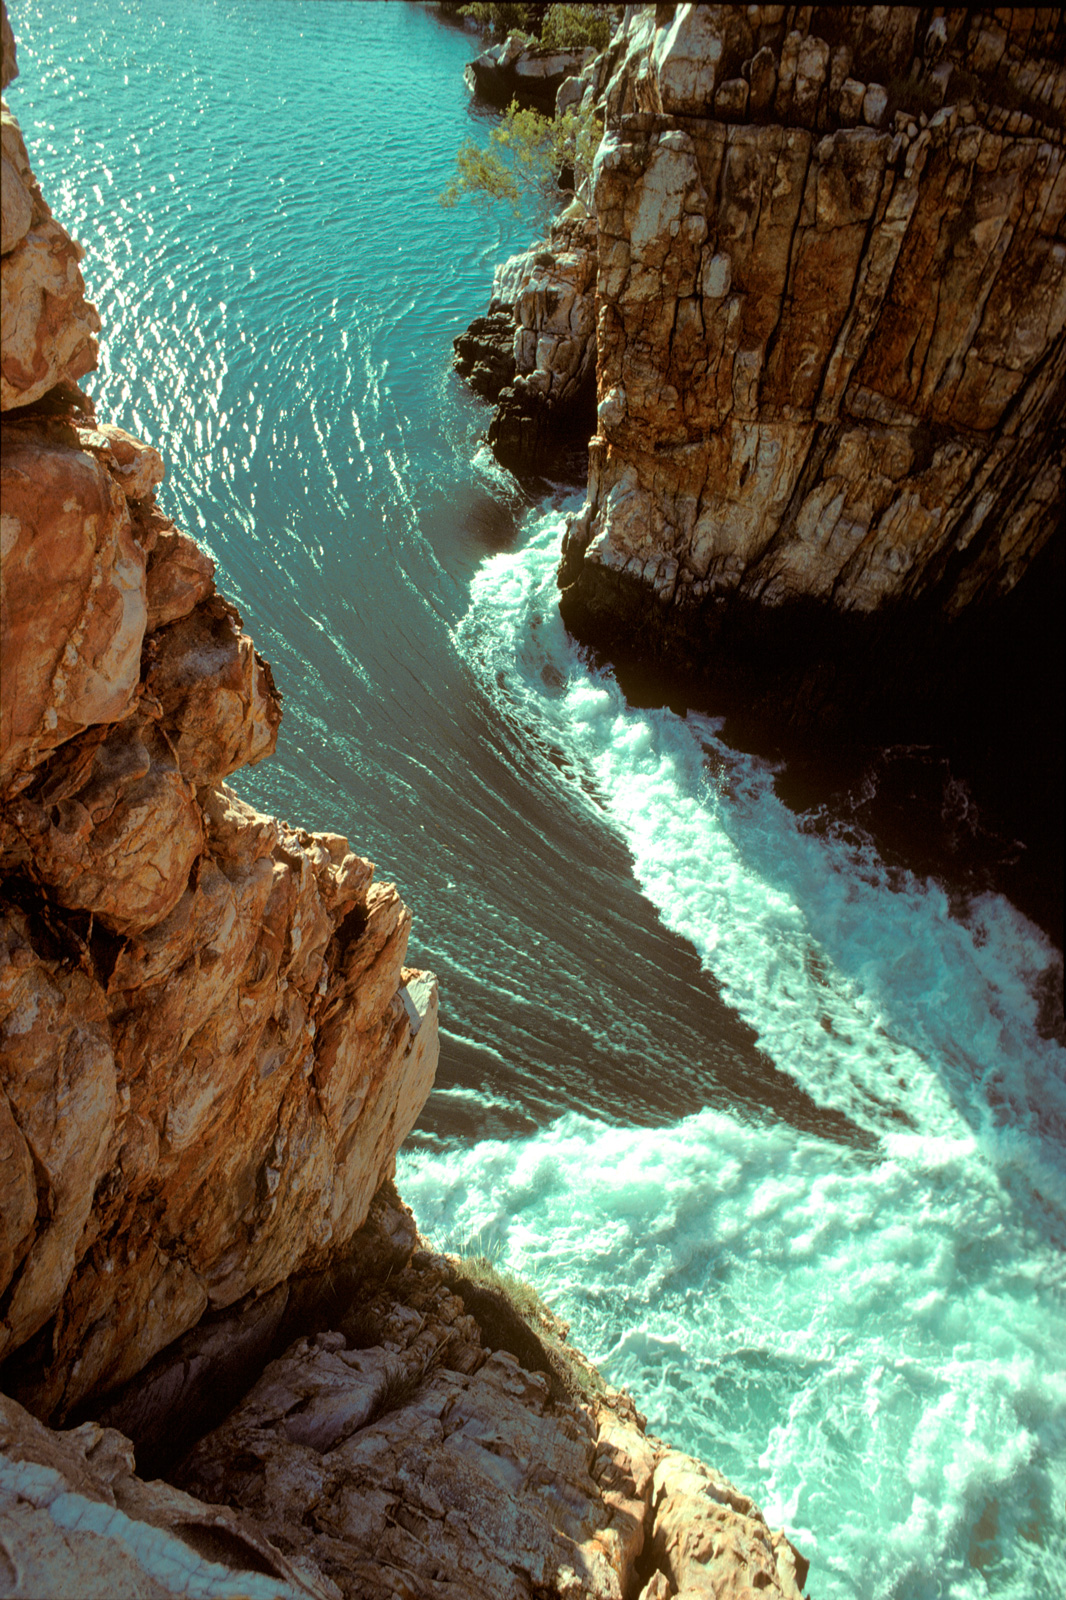 Tide-race or horizontal waterfall, vertical view into the throat of the most powerful tide-race in the world. It is a drowned river gorge. Twice a day a tidal variation of up to 10 m empties and fills two land-locked valleys with water from Talbot Bay.